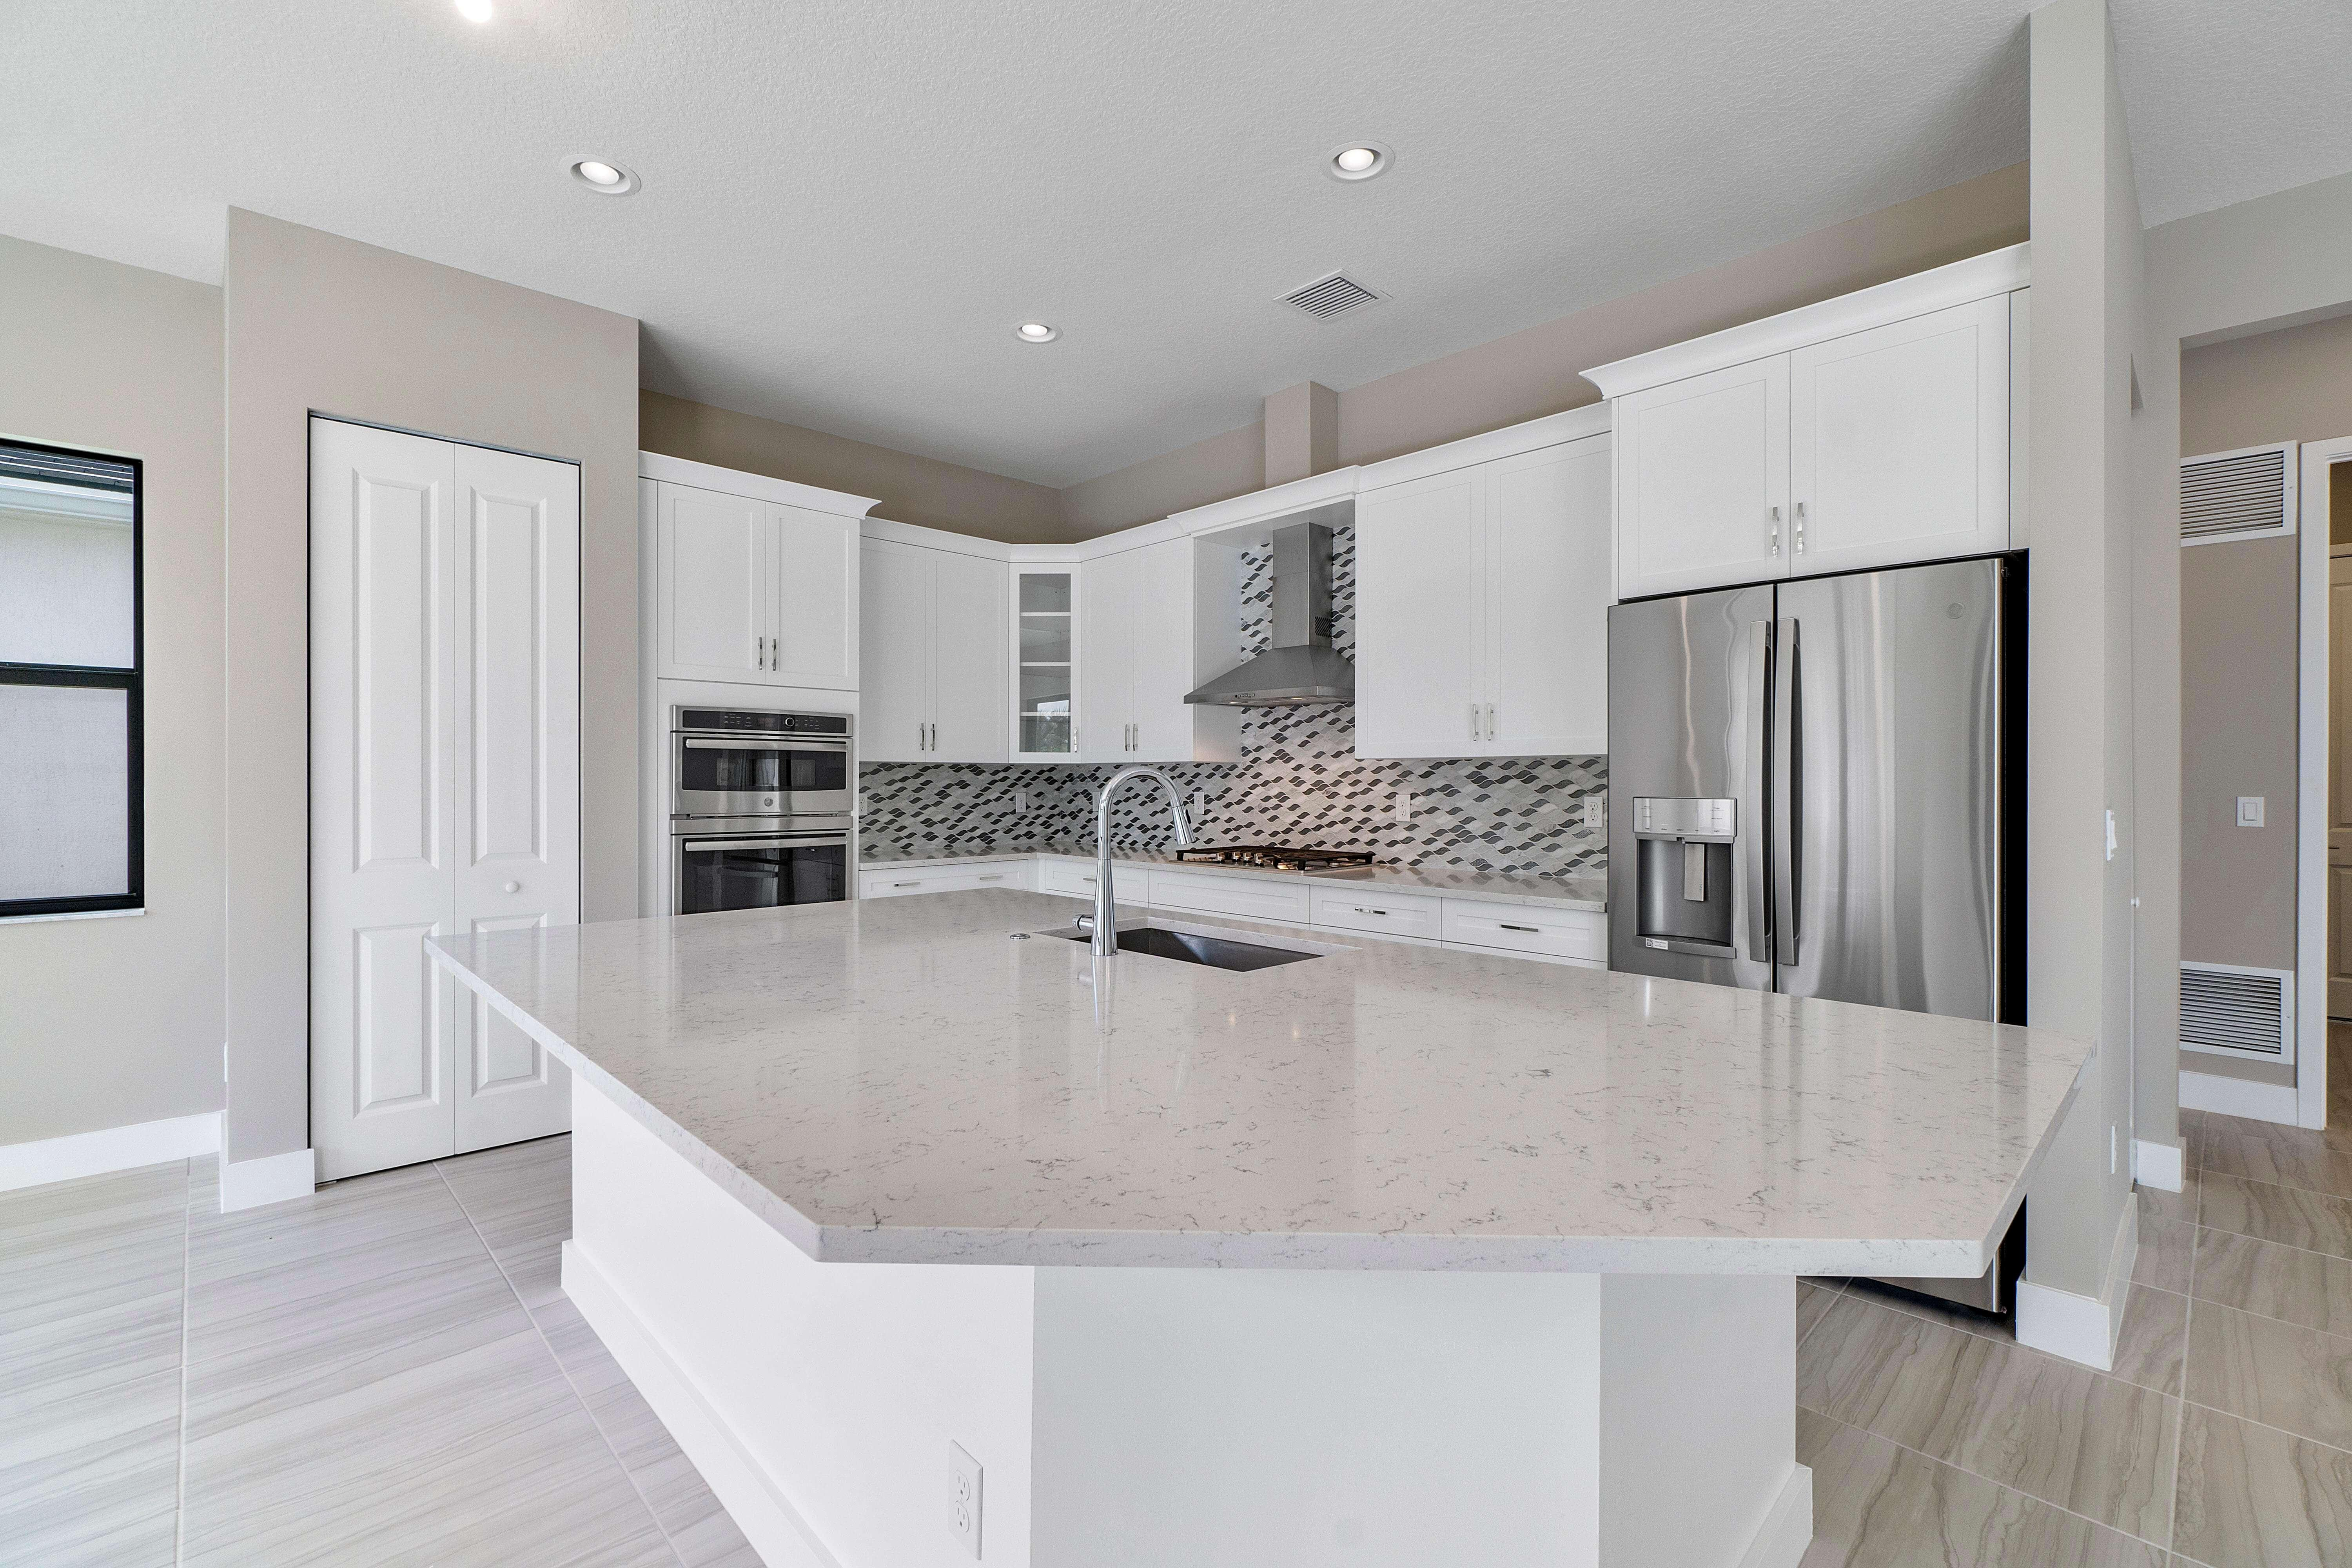 Kitchen featured in the Riviera By Akel Homes in Palm Beach County, FL